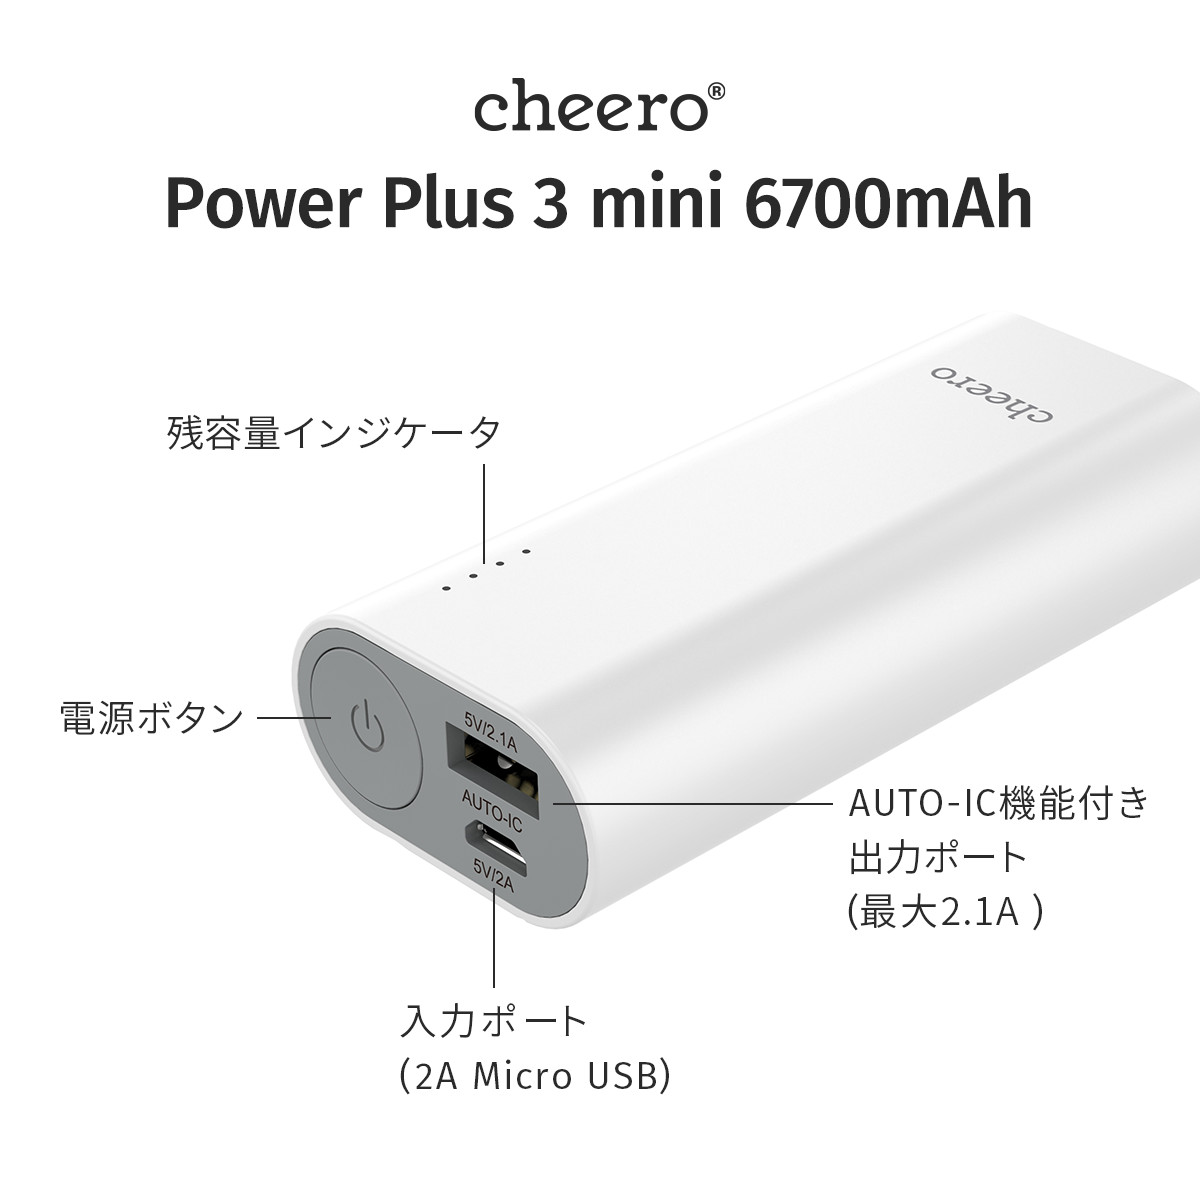 cheero Power Plus 3 mini 6700mAh large mobile battery [Japanese  Sanyo/Panasonic high quality battery powered] iPhone 6 s/6 rapid charger  for s